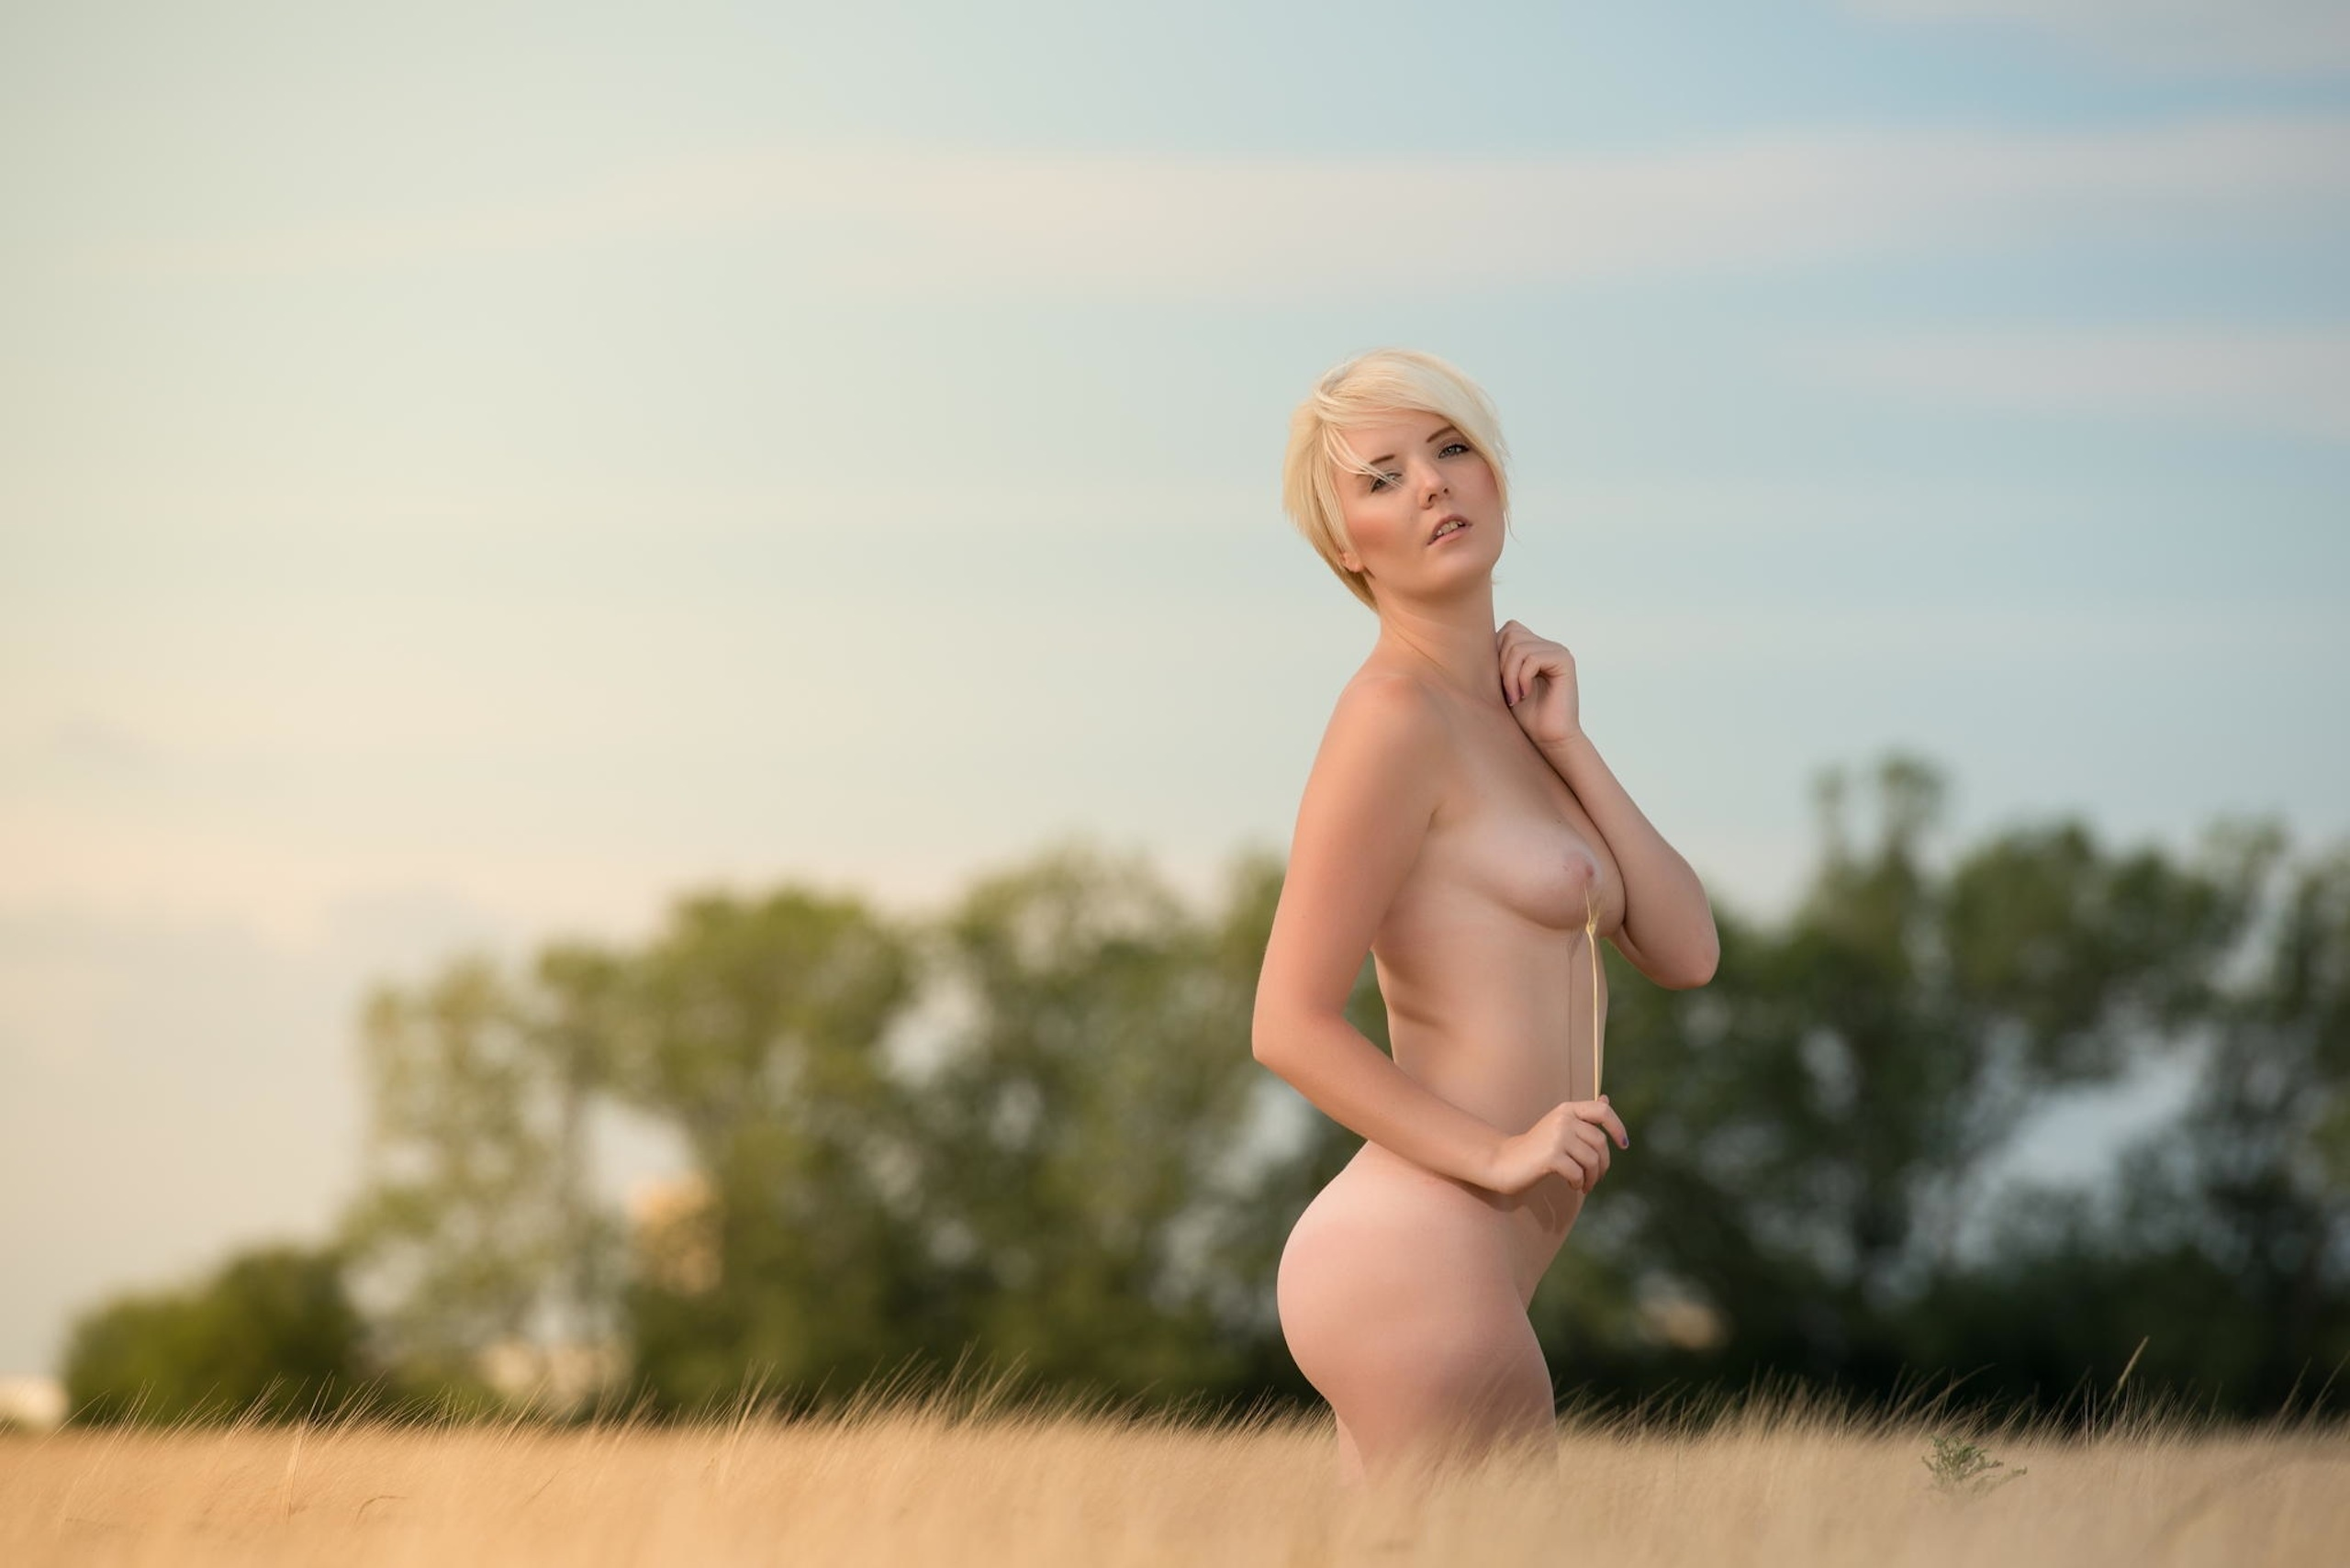 wallpaper blonde, babe, outdoor, tits, boobs, short hair, sexy, hot